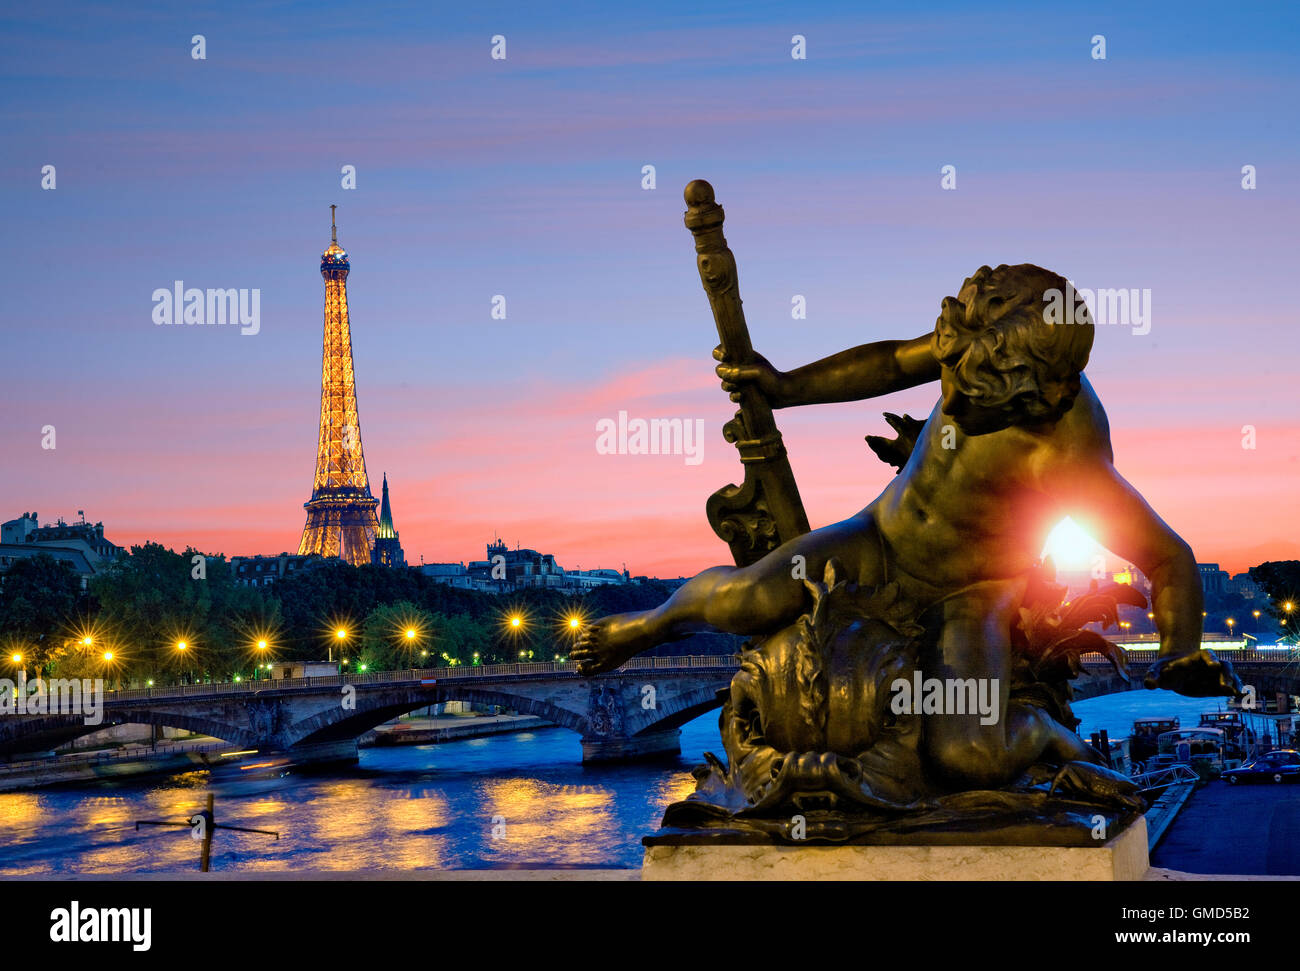 Alexandre III bridge in Paris, France - Stock Image